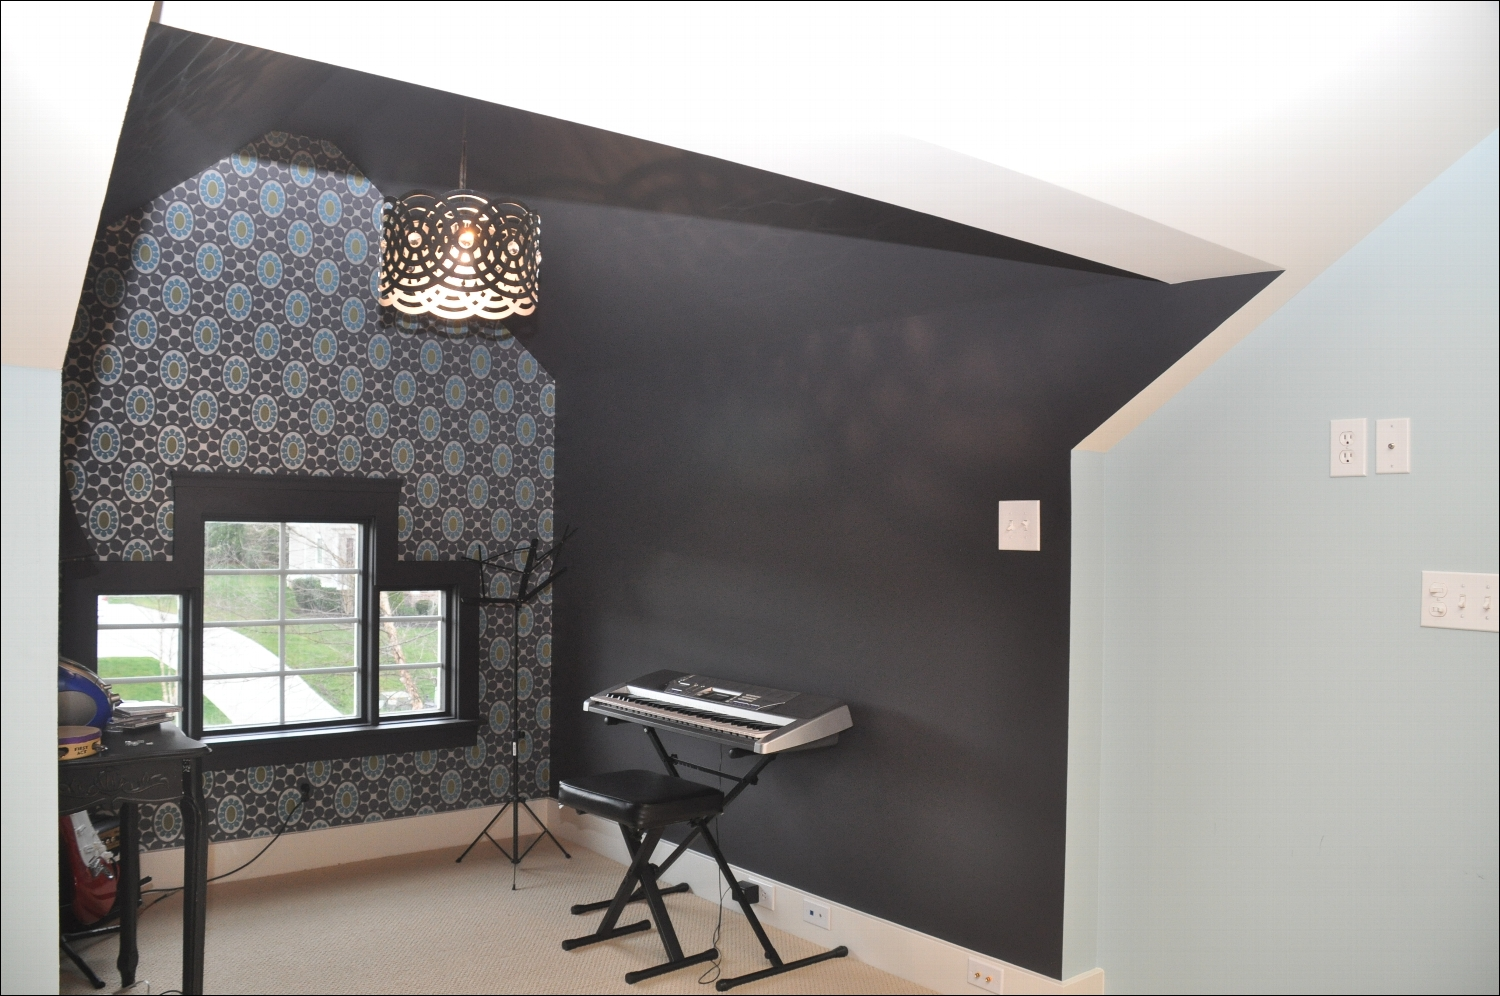 Benjamin Moore Black Jack 2133 20 Is A Matching Paint Color 3e3e3f To 373738 303031 Schemes